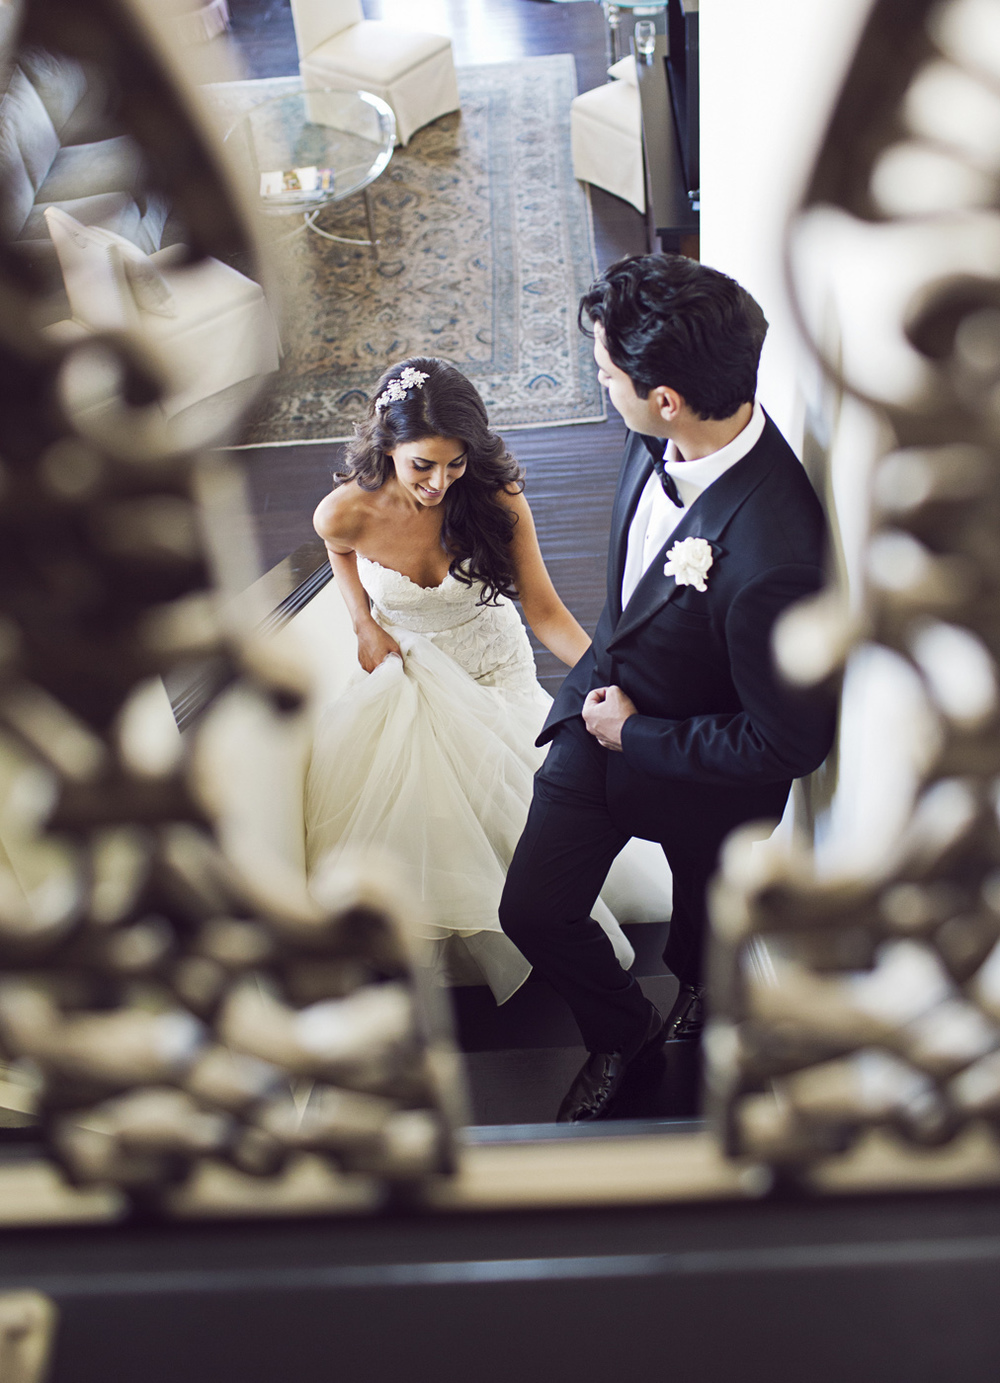 050DukePhotography_DukeImages_weddings_losangeles.jpg